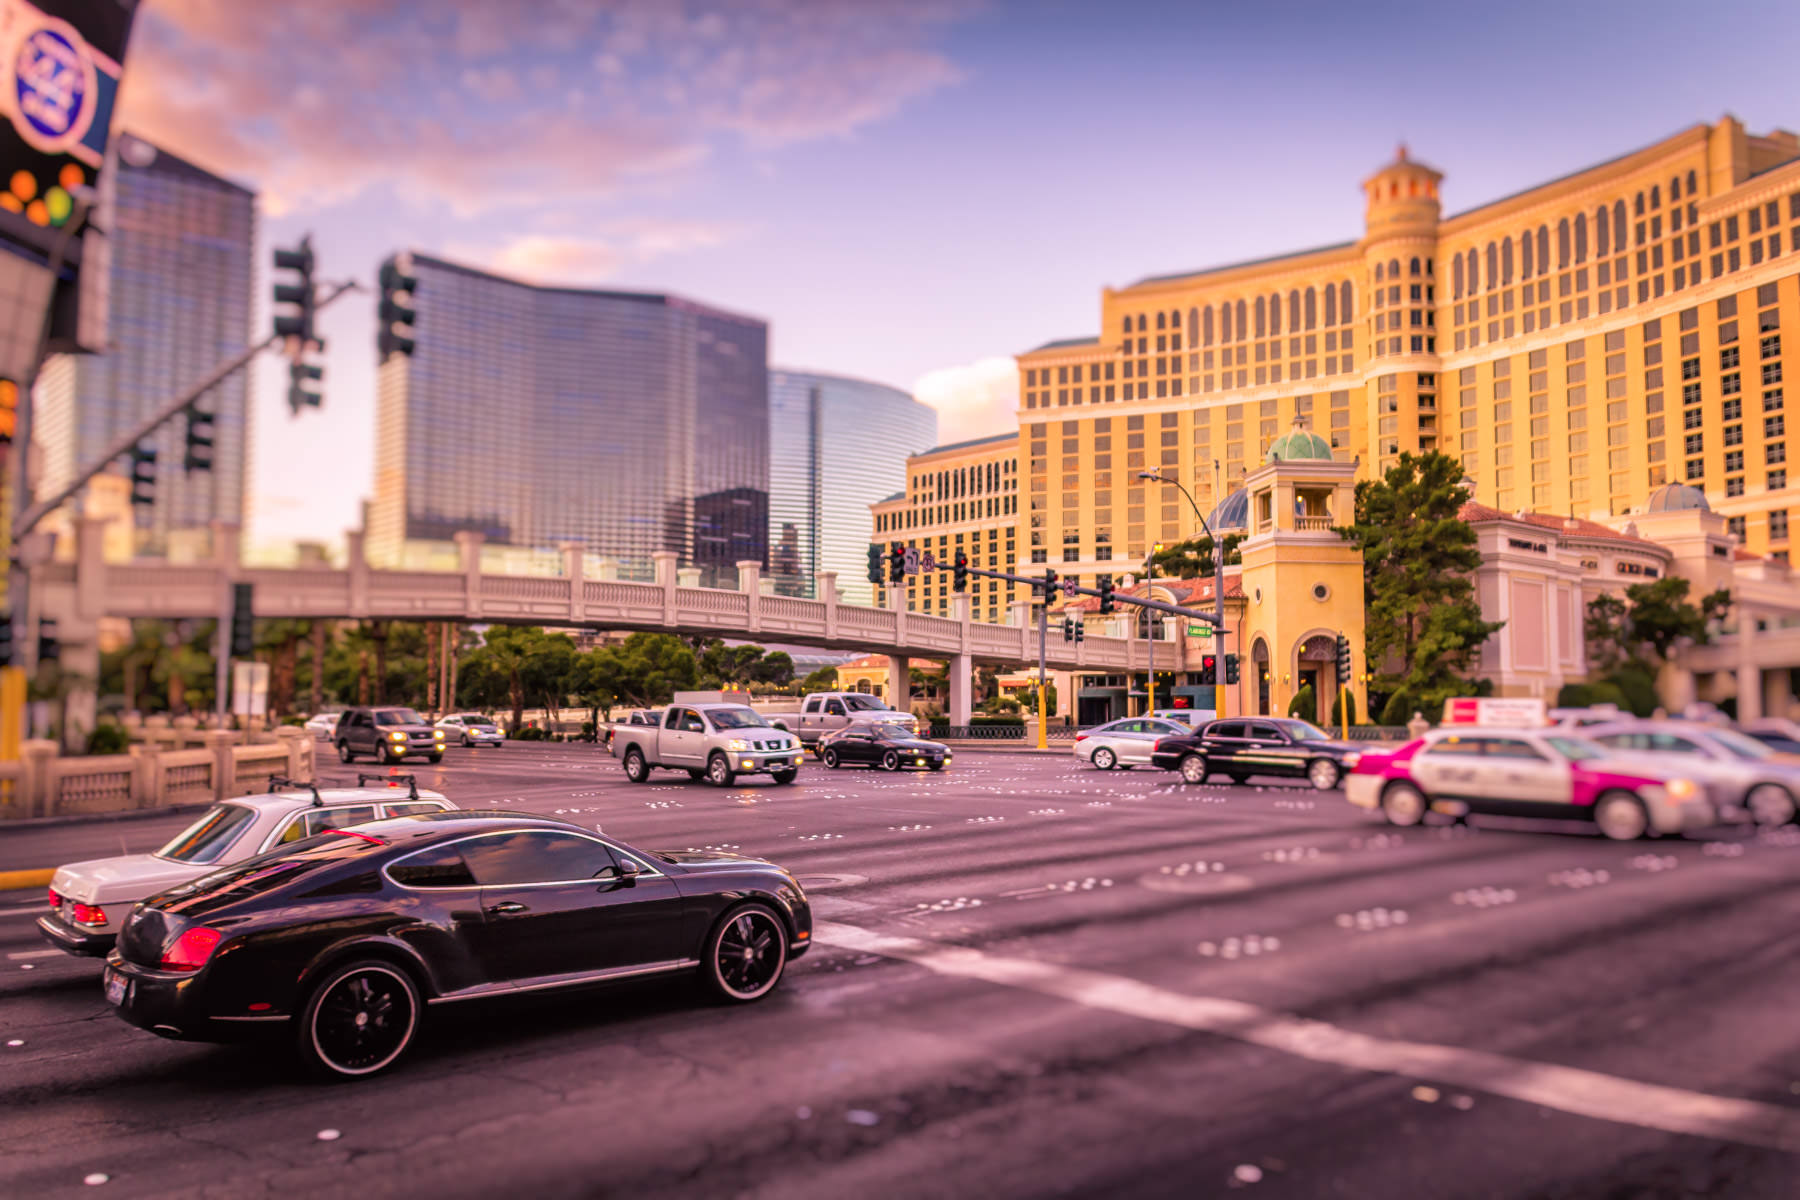 Early-morning traffic at the intersection of Flamingo Road and the Las Vegas Strip.